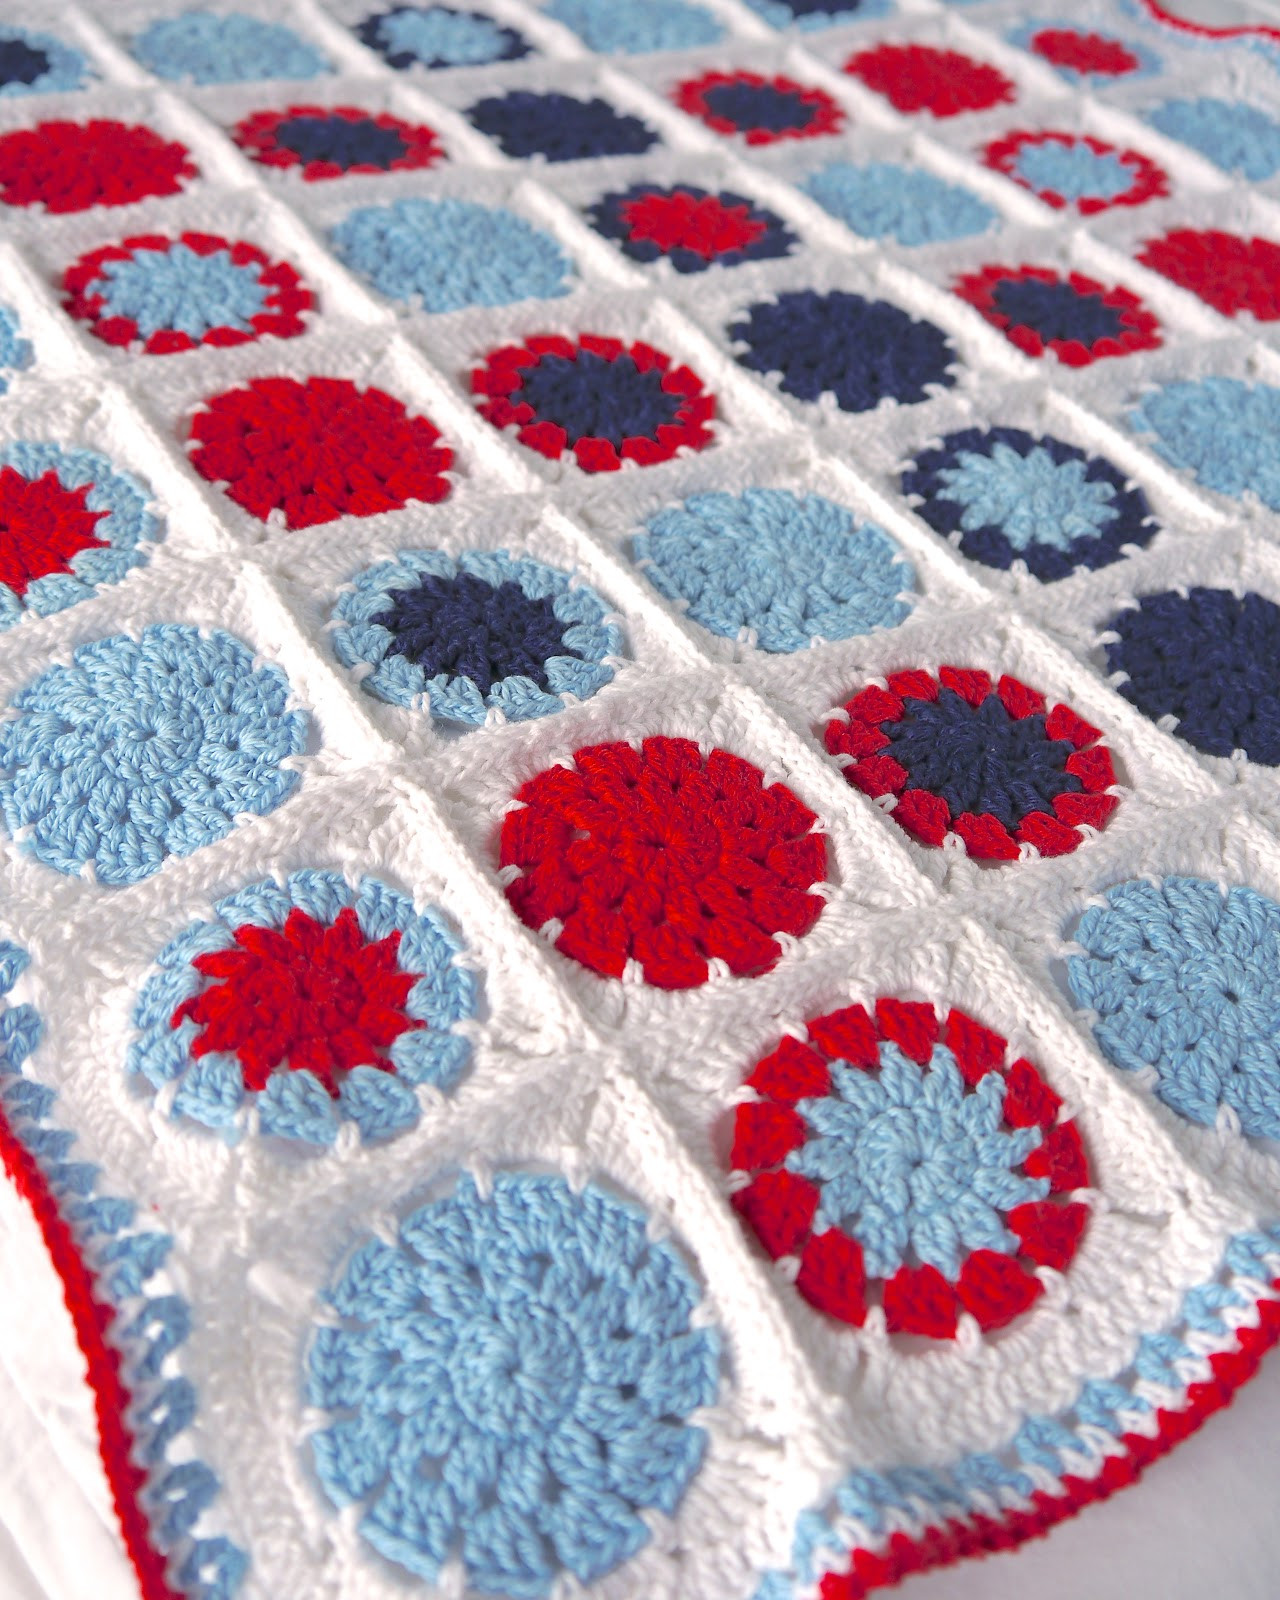 Crochet Blanket Designs New Make It Crochet Cotton Baby Blanket Circle In Square Of Incredible 42 Photos Crochet Blanket Designs